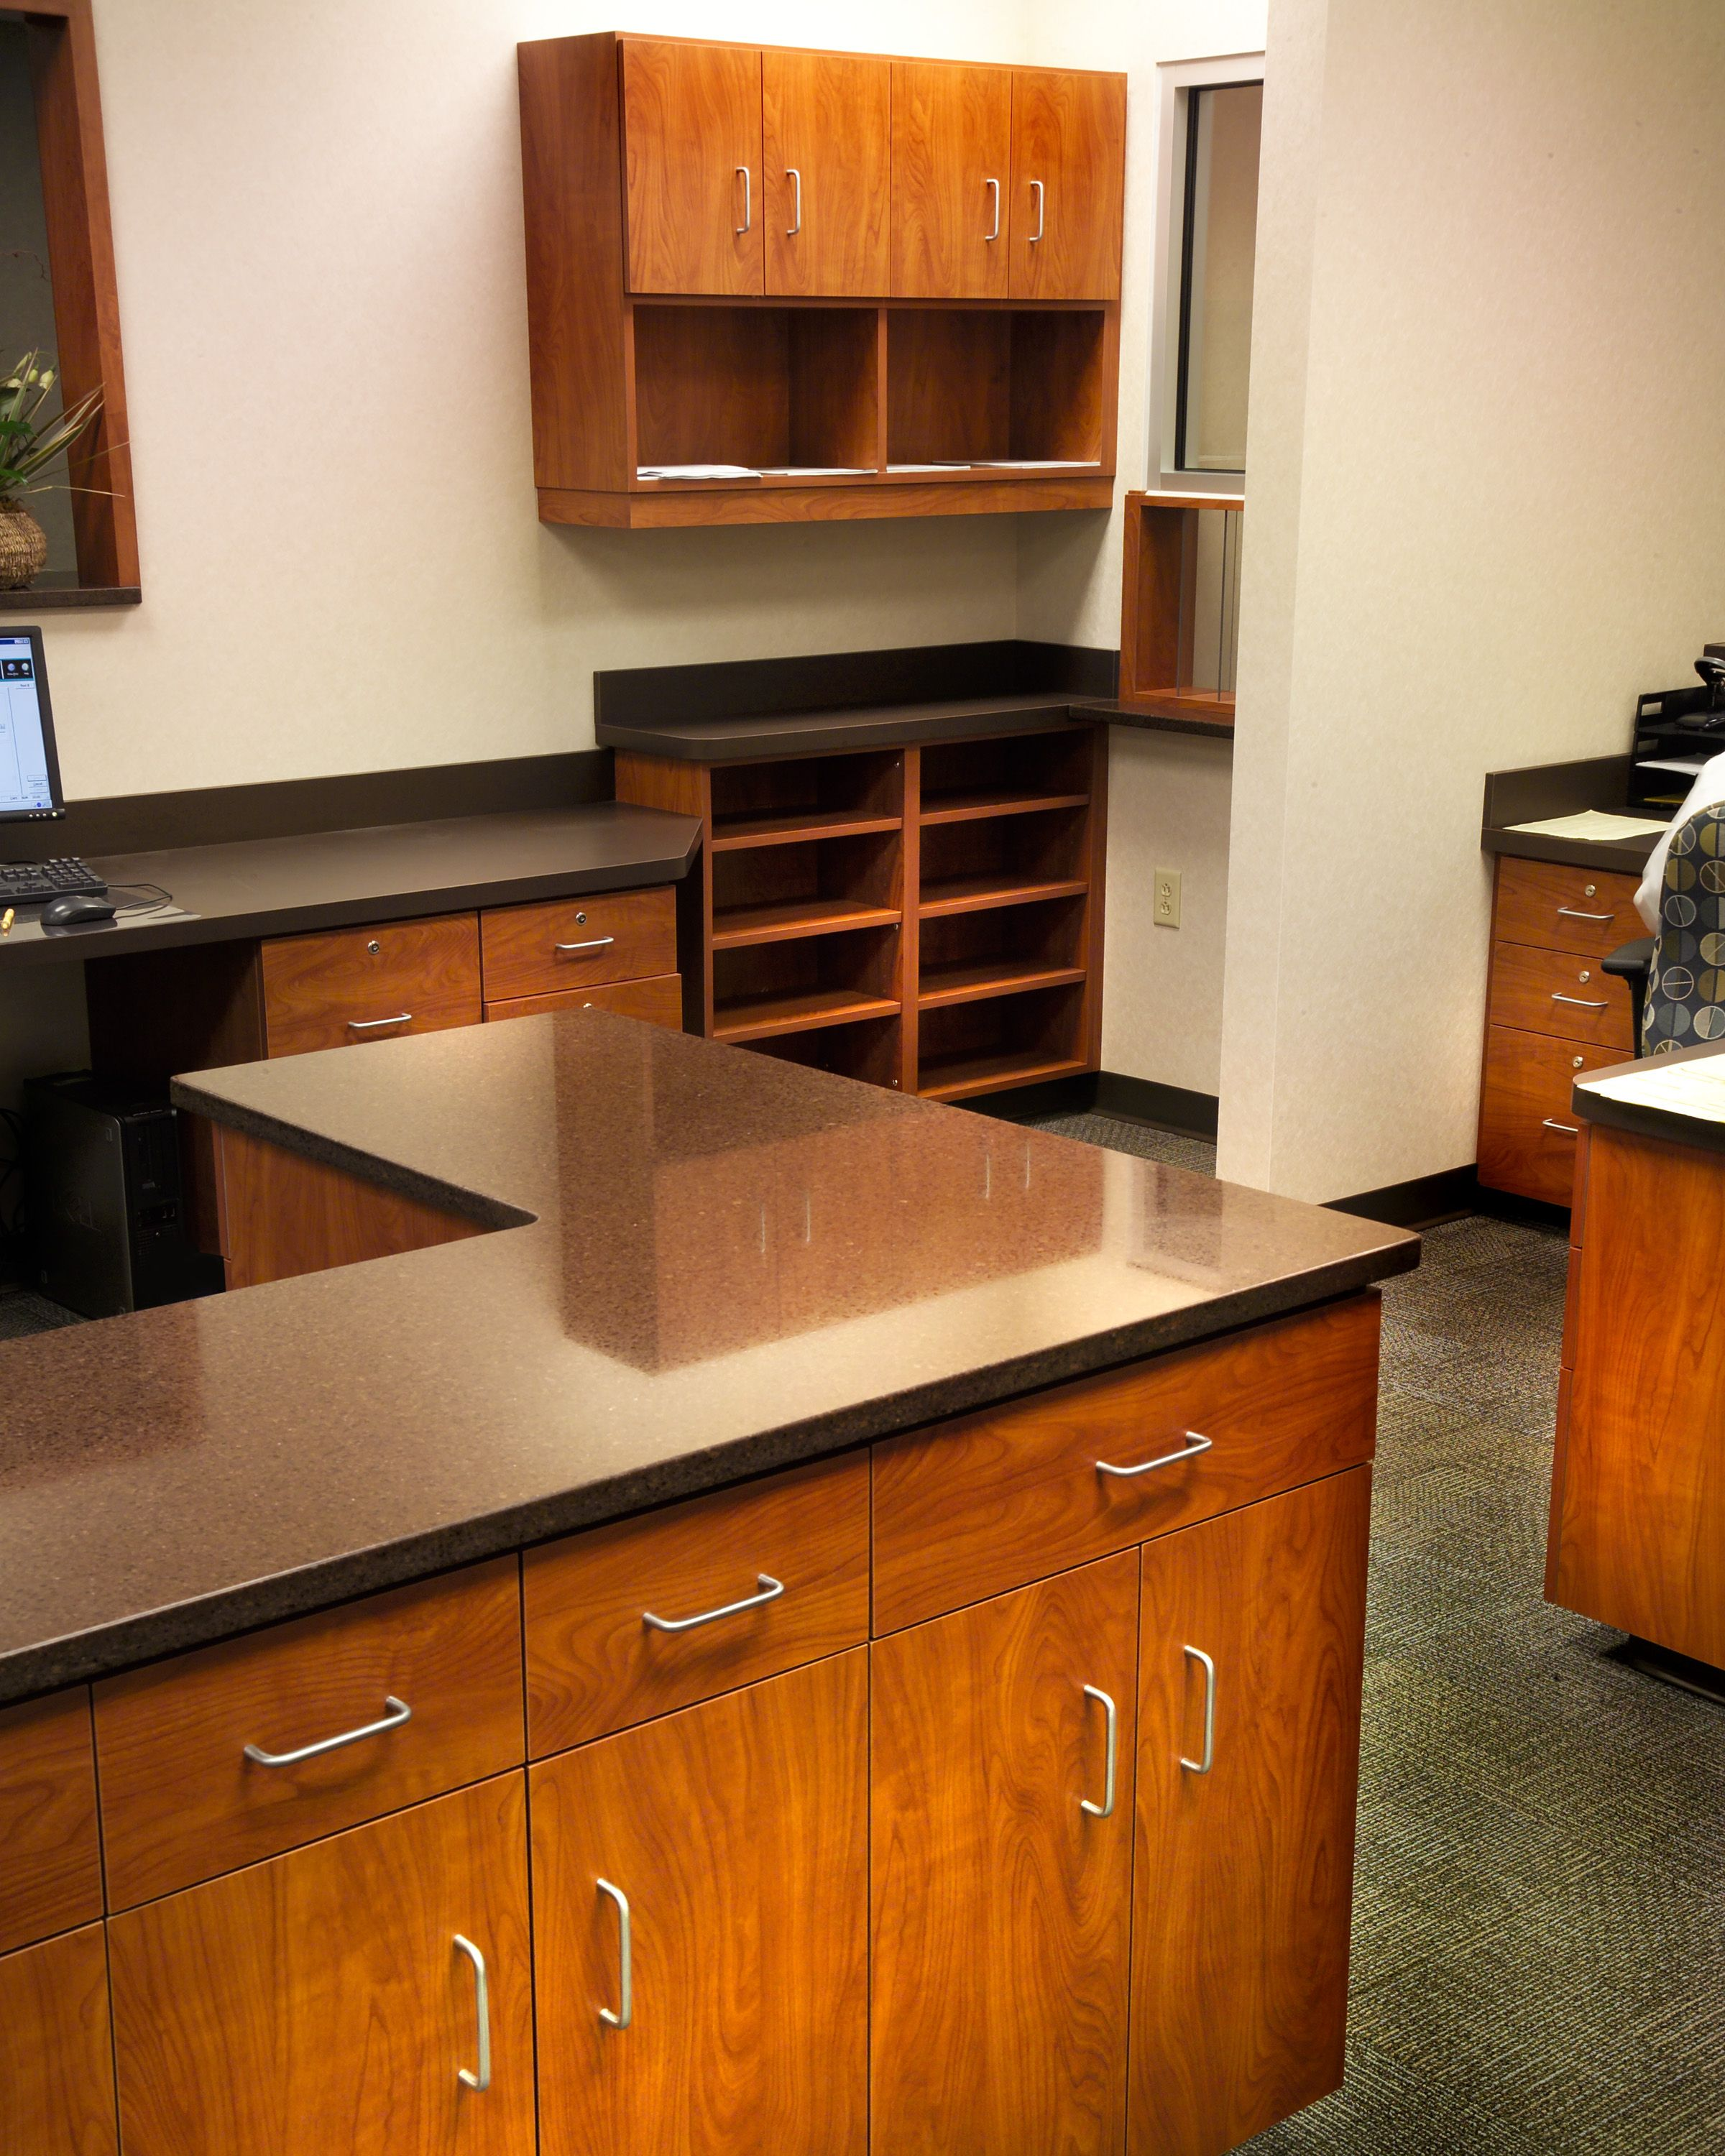 Plastic Laminate Cabinetry In Work Room Toledo Orthopaedic Surgeons Kitchen Cabinets Countertop Options Countertops